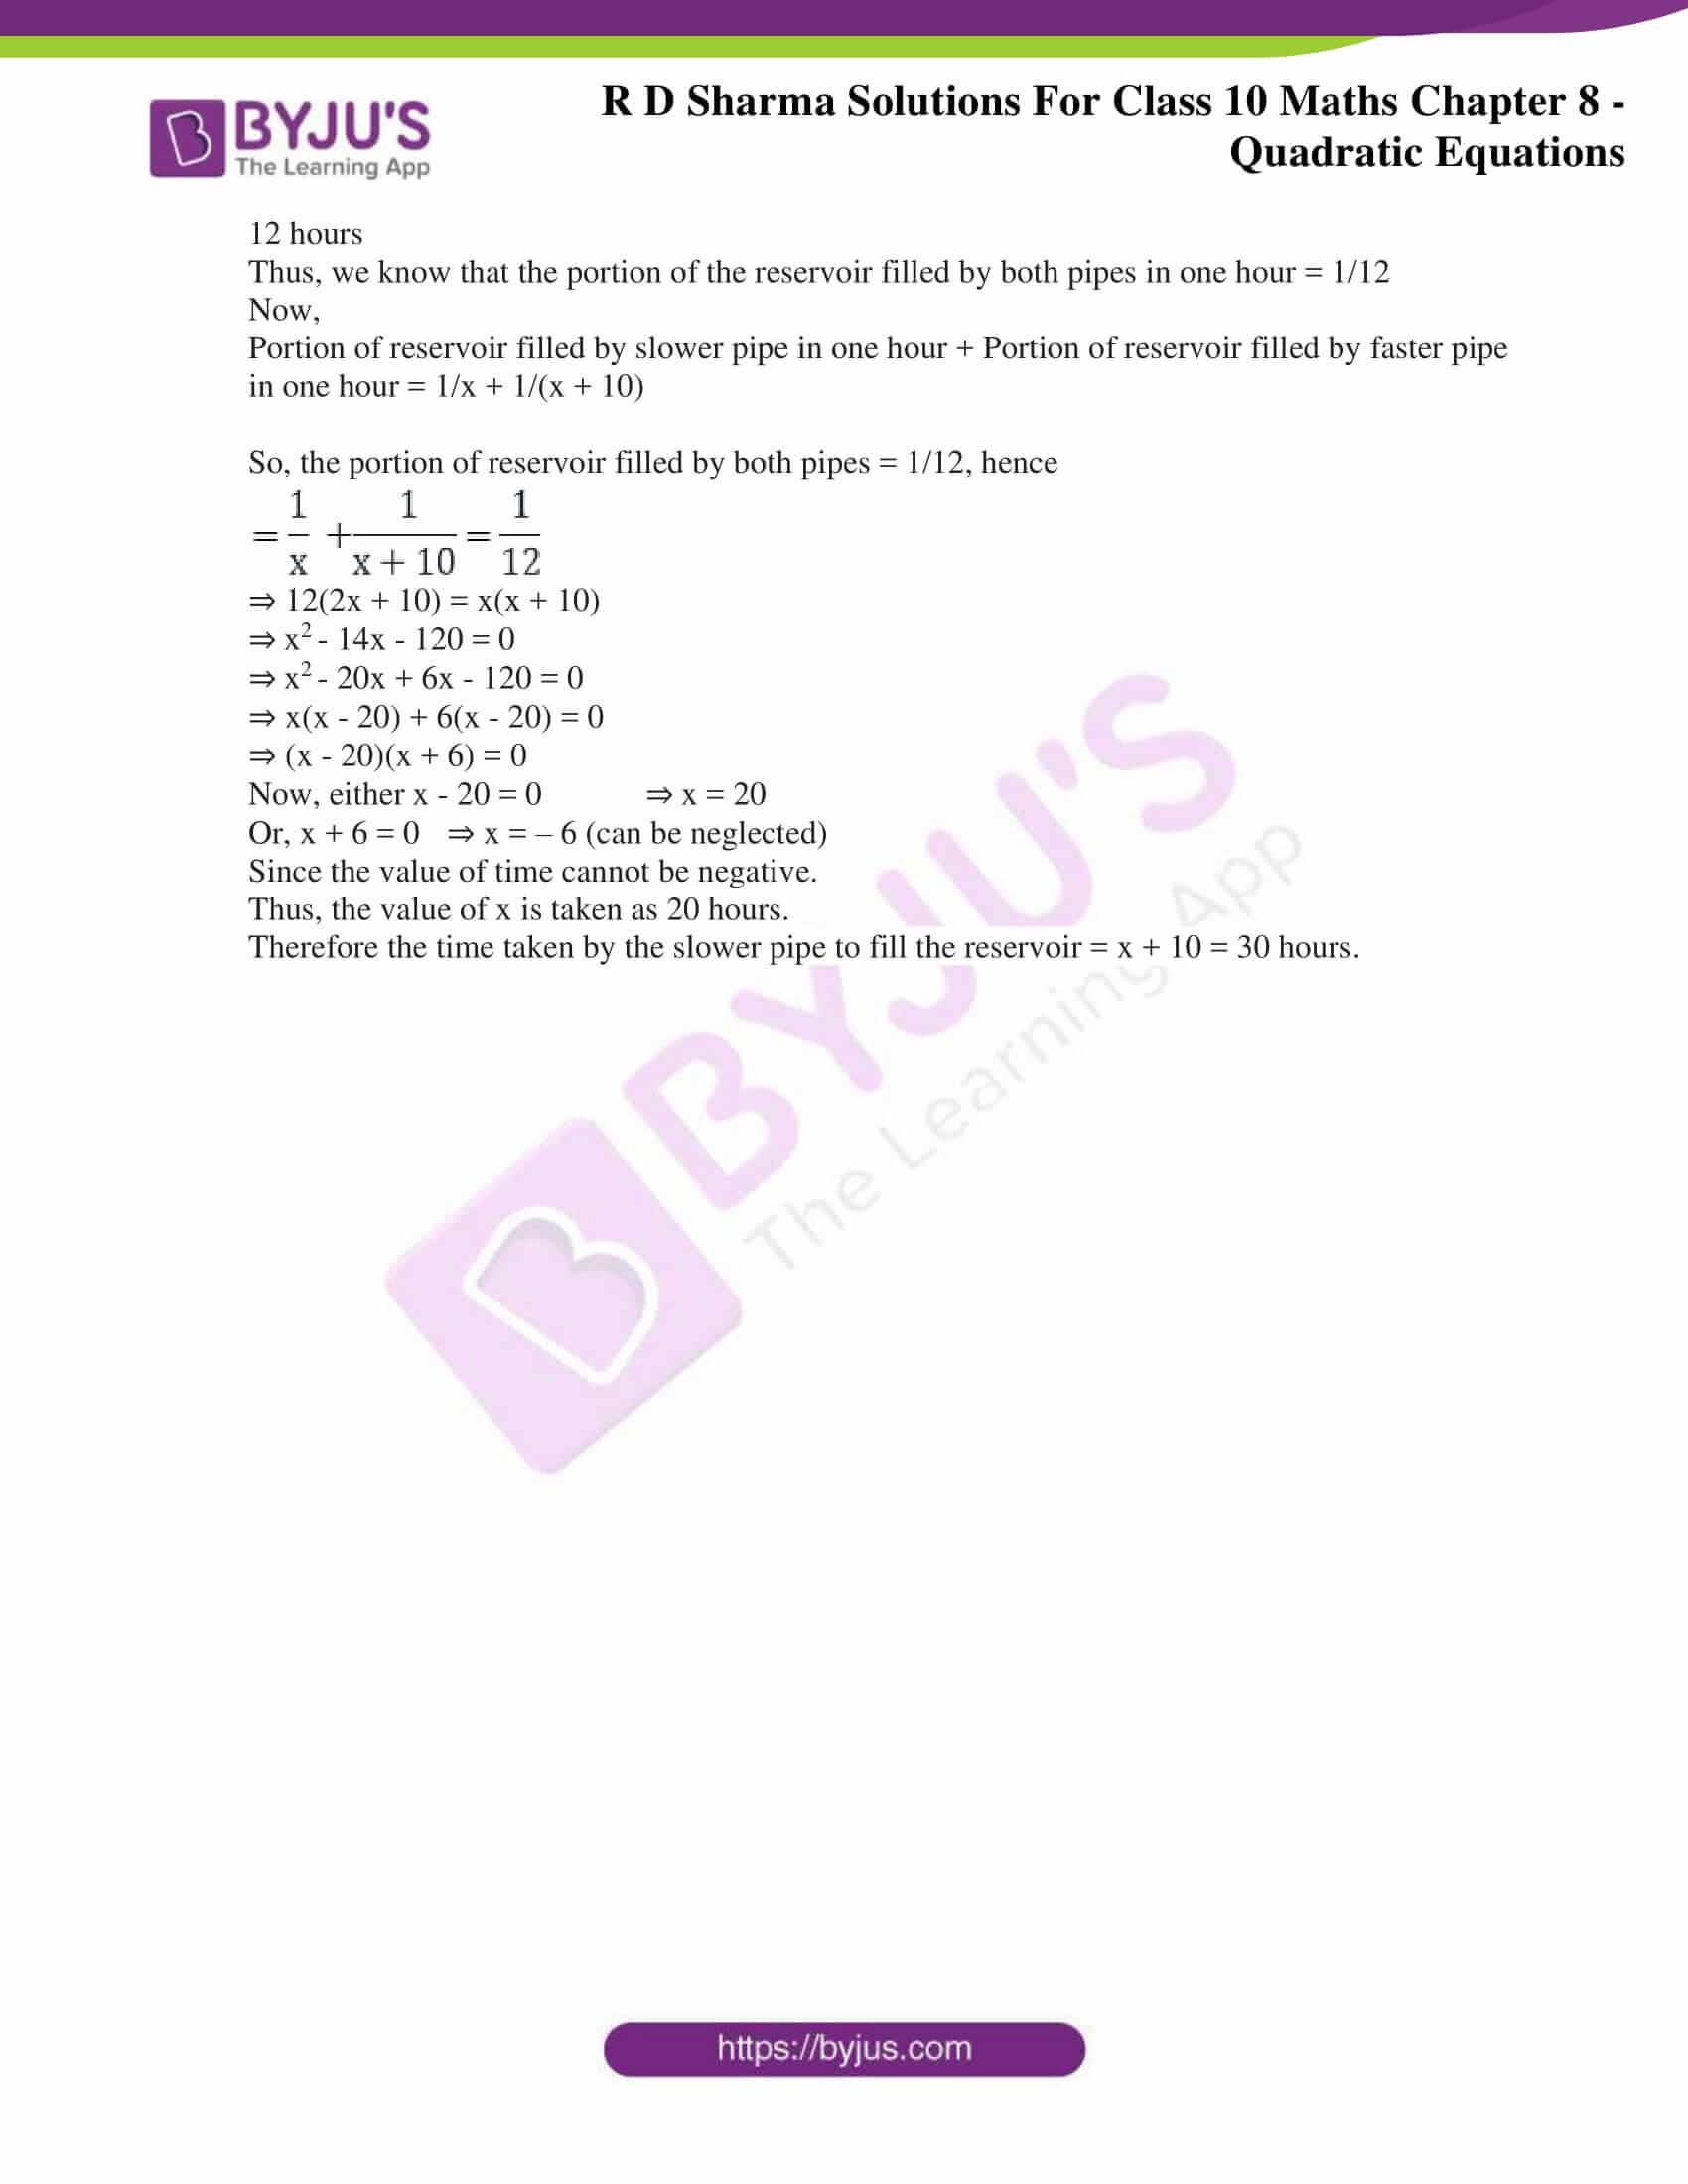 RD Sharma Solutions for Class 10 Chapter 8 Quadratic Equations Exercise 8.12 71